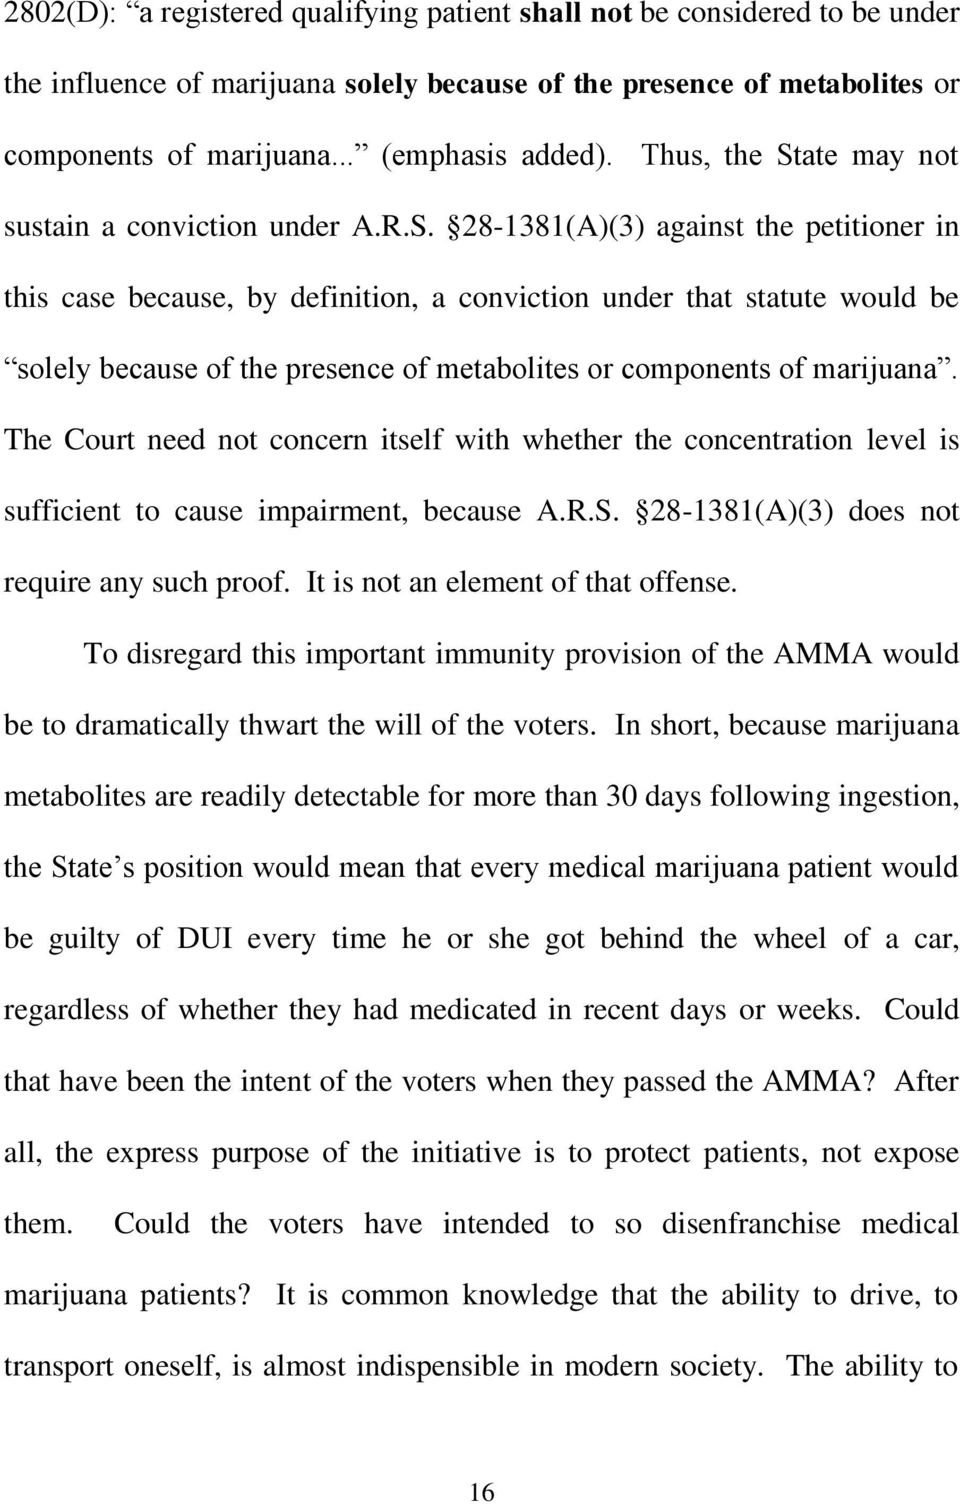 The Court need not concern itself with whether the concentration level is sufficient to cause impairment, because A.R.S. 28-1381(A(3 does not require any such proof.